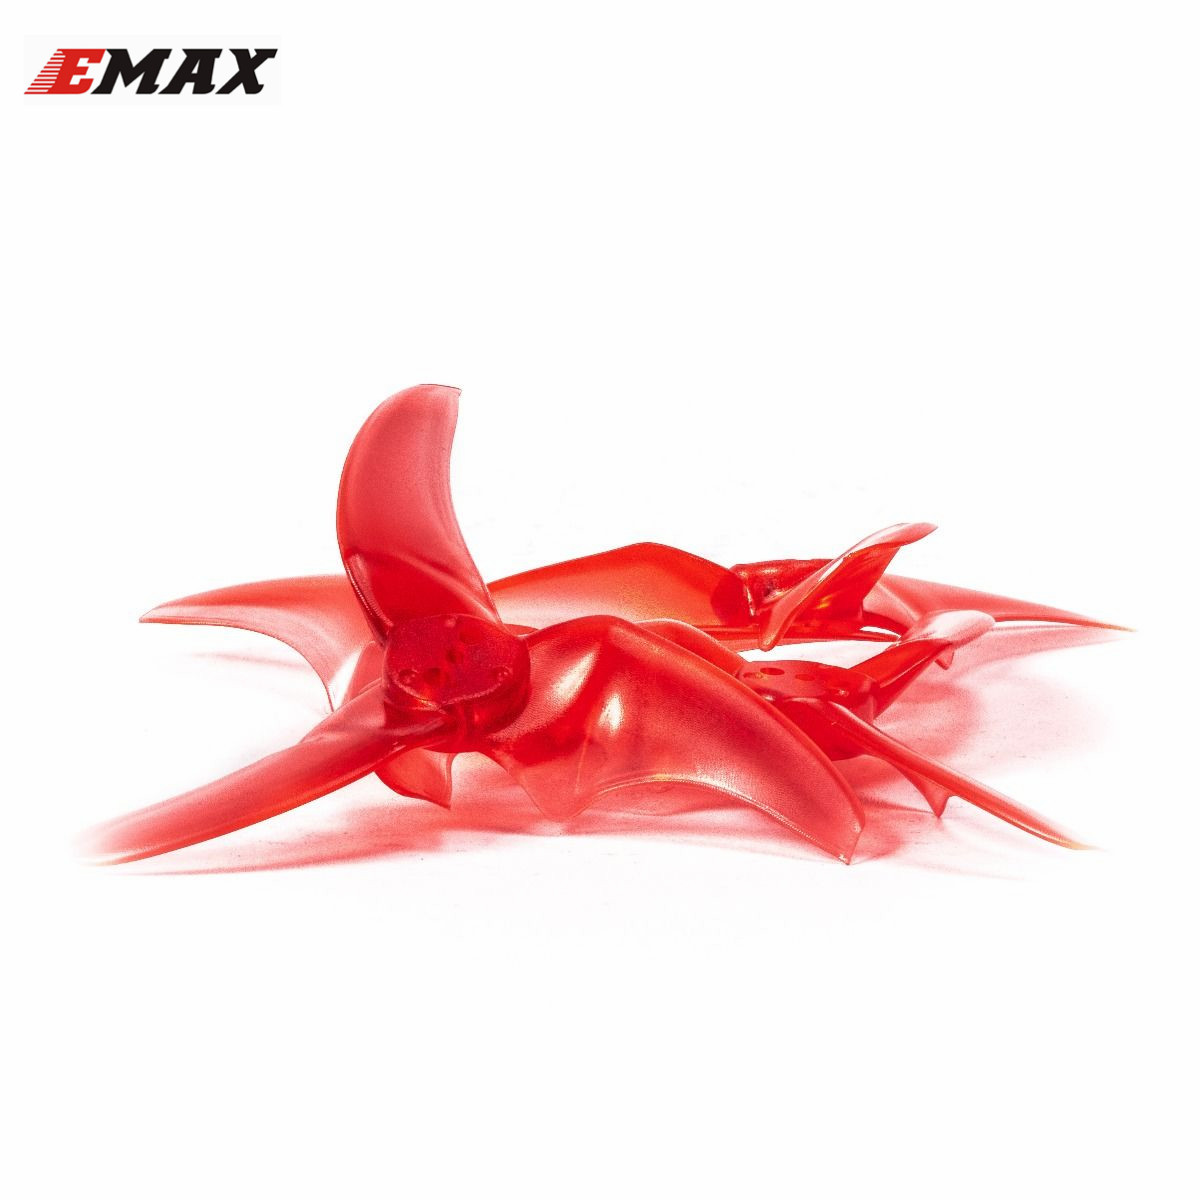 2 Pairs Emax AVAN Rush 2.5 Inch 3 Blade Propeller For Babyhawk R RC Drone FPV Racing Multi Rotor Spare Part Accessories2 Pairs Emax AVAN Rush 2.5 Inch 3 Blade Propeller For Babyhawk R RC Drone FPV Racing Multi Rotor Spare Part Accessories